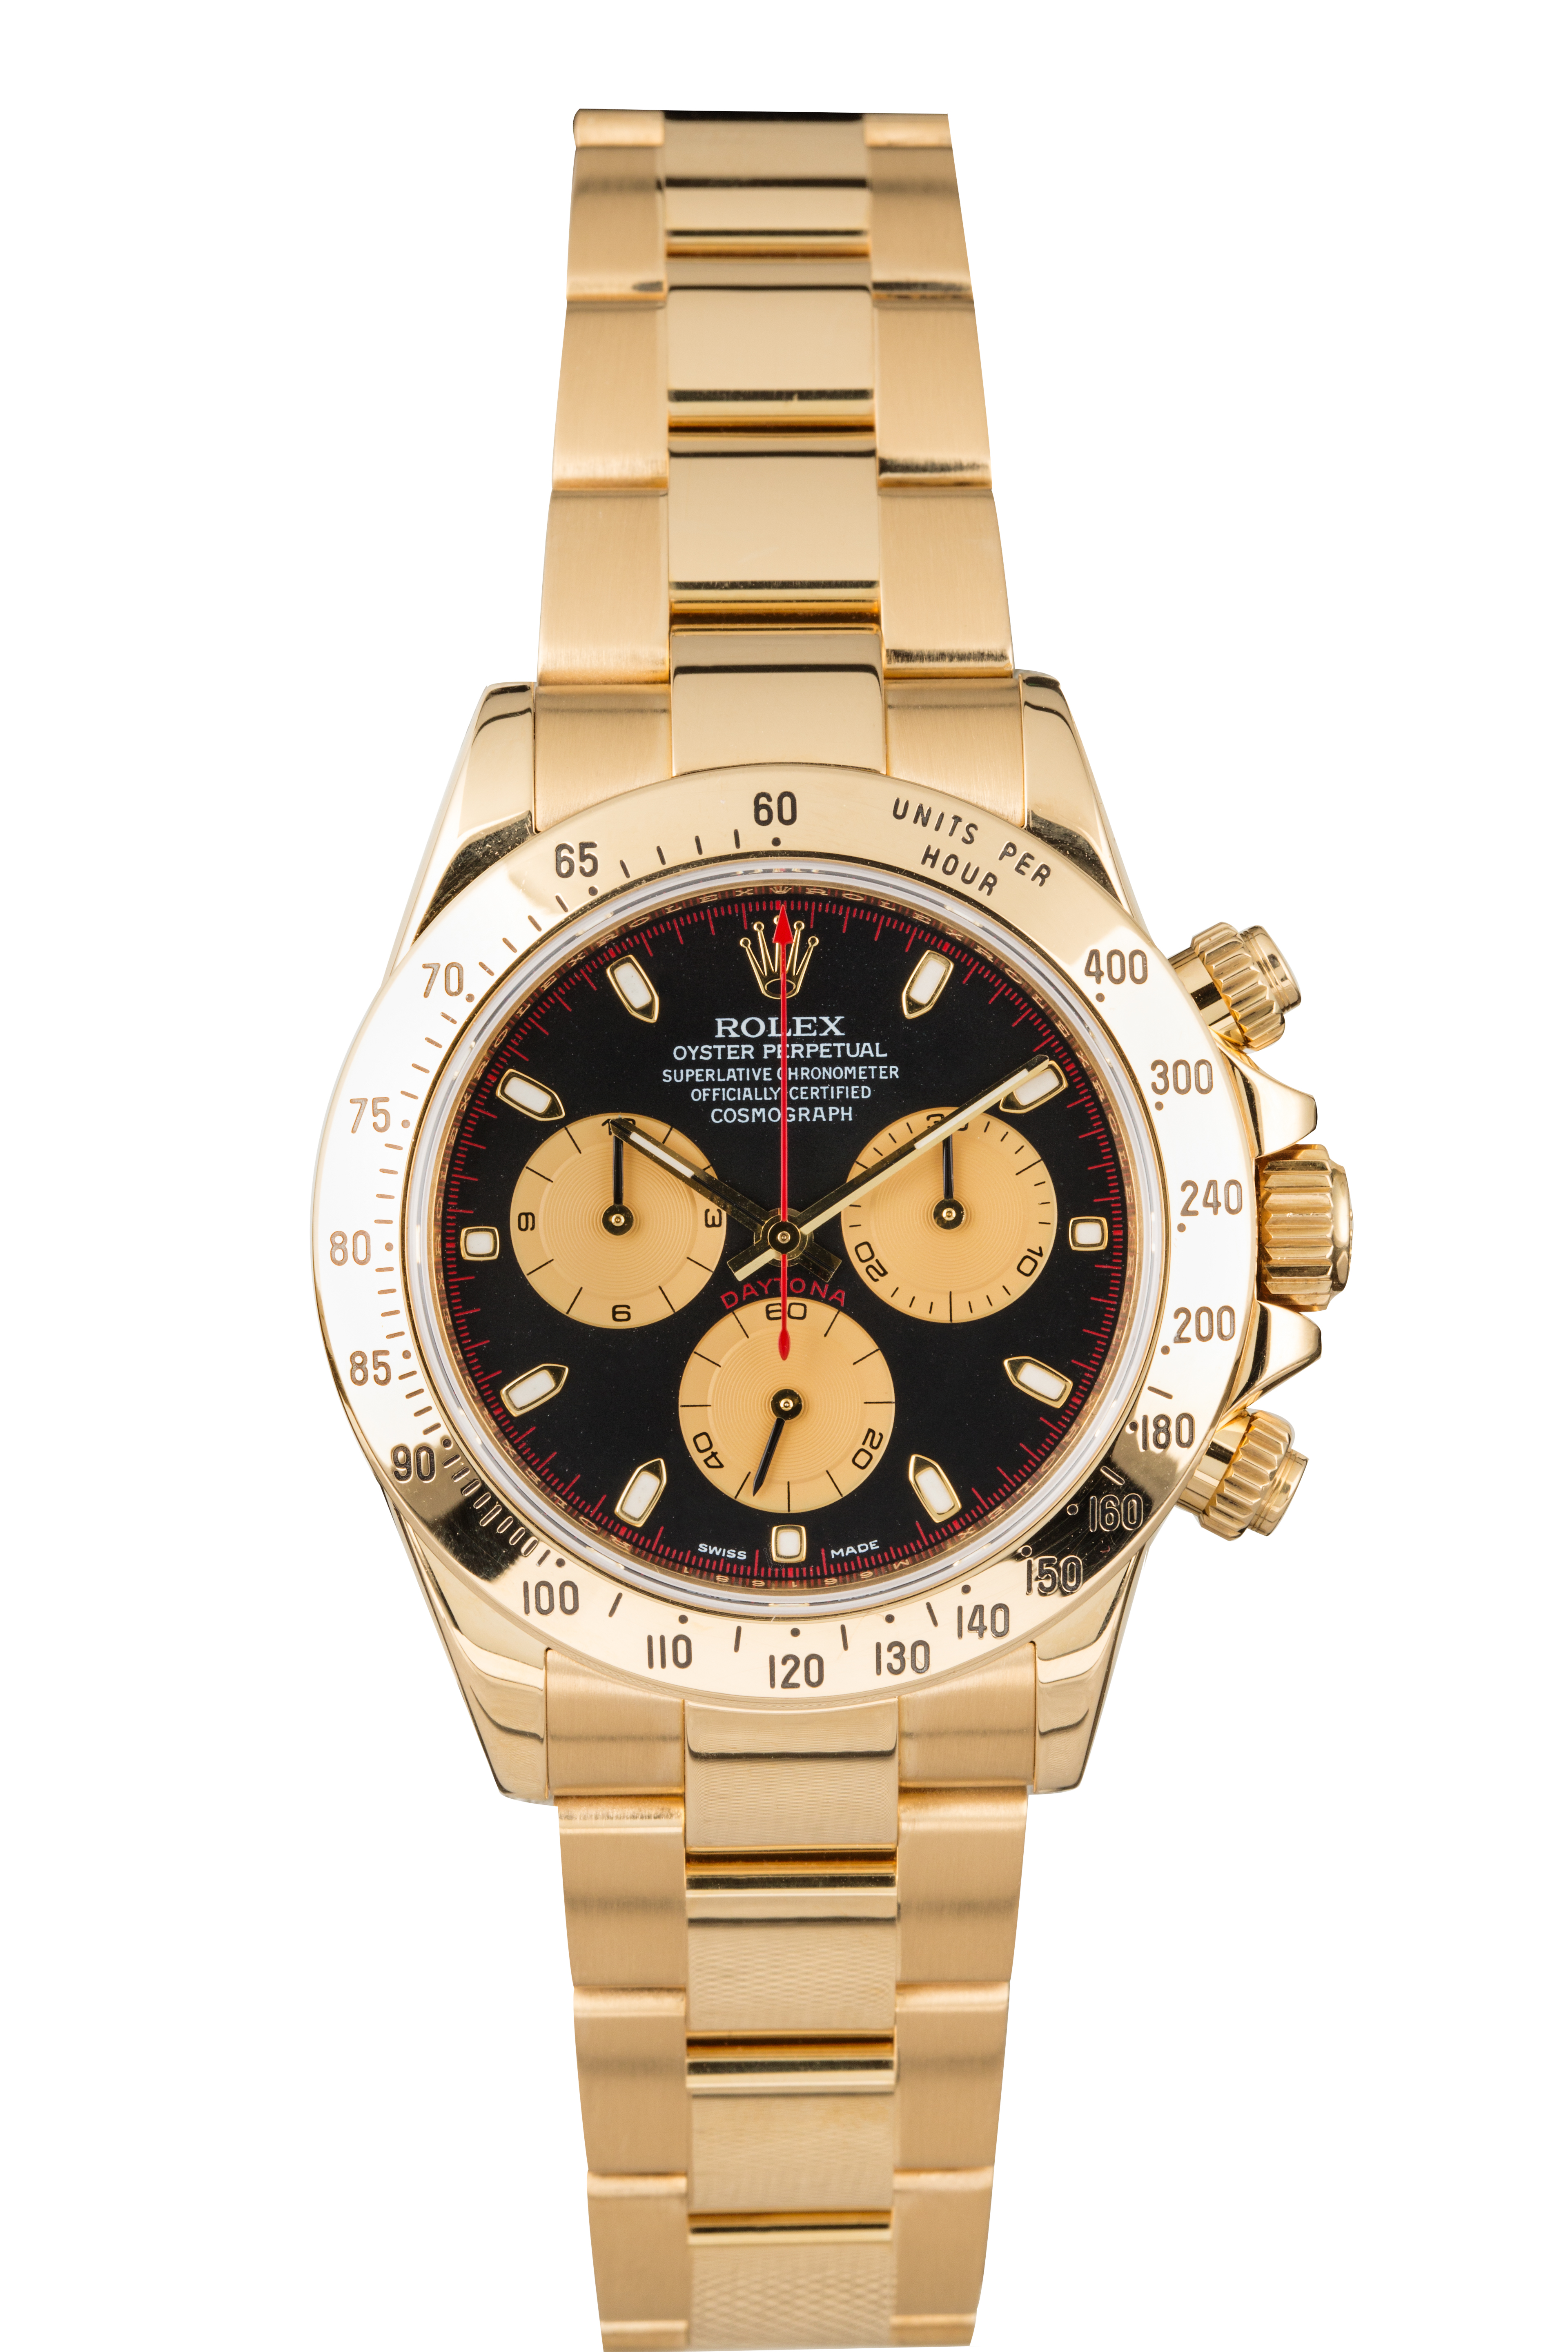 View full screen - View 1 of Lot 9. ROLEX | Daytona, Ref 116528 A Yellow Gold Chronograph Wristwatch with Bracelet Circa 2001.